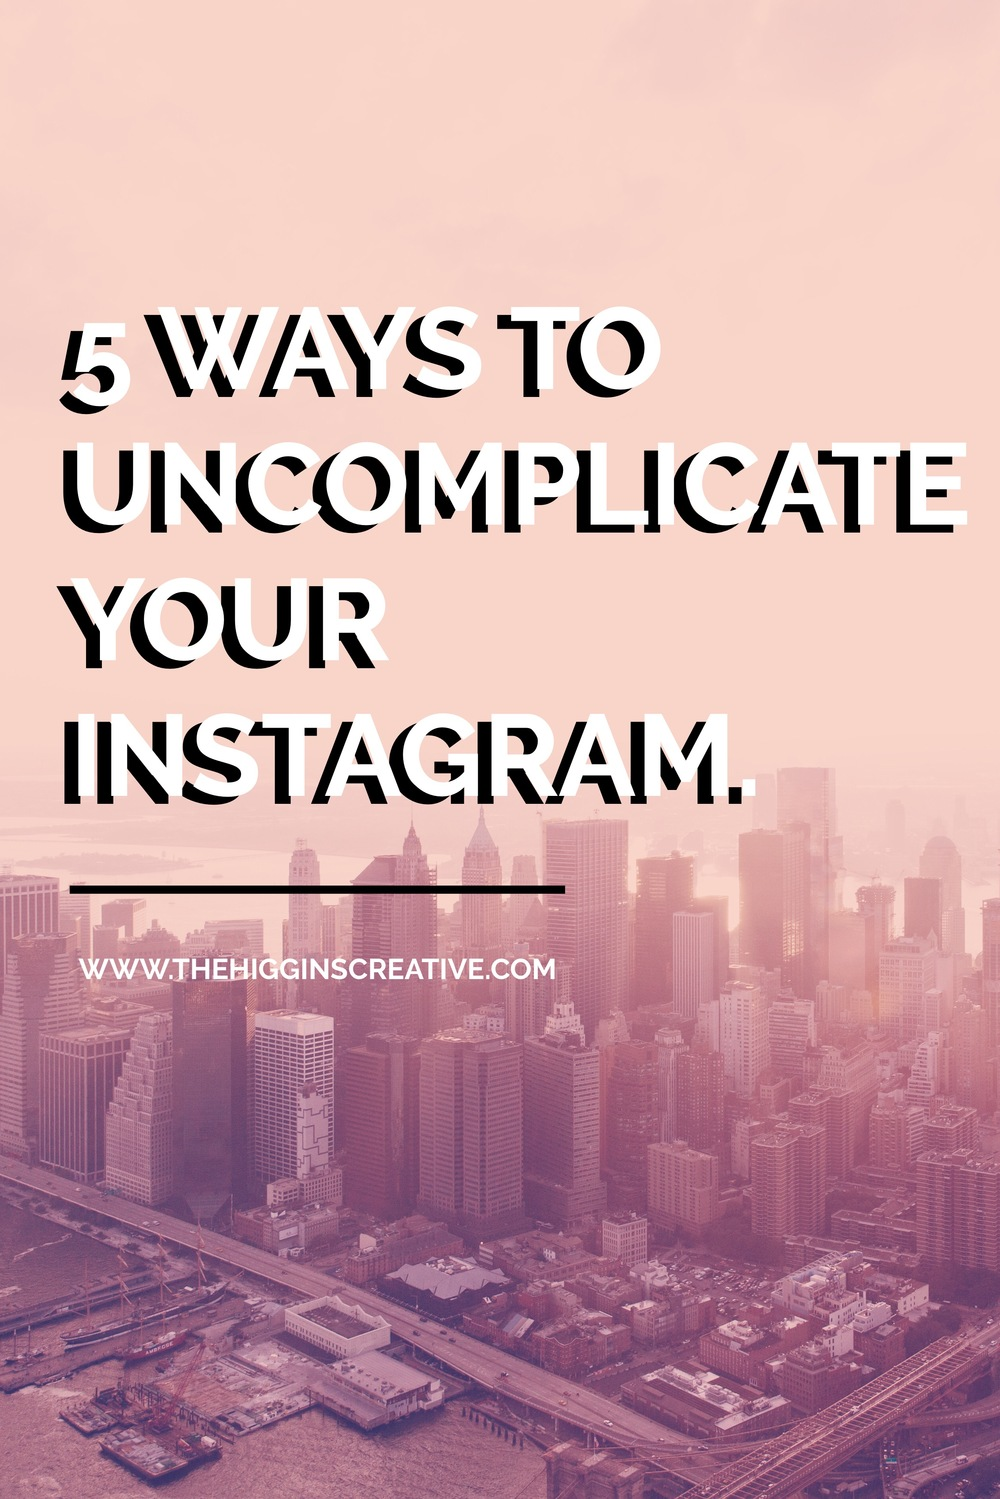 5 Ways to uncomplicate Instagram by The Higgins Creative. Are you struggling with planning out your Instagram and feeling overwhelmed? Click the link to read how we uncomplicate selling your art and products on Instagram.